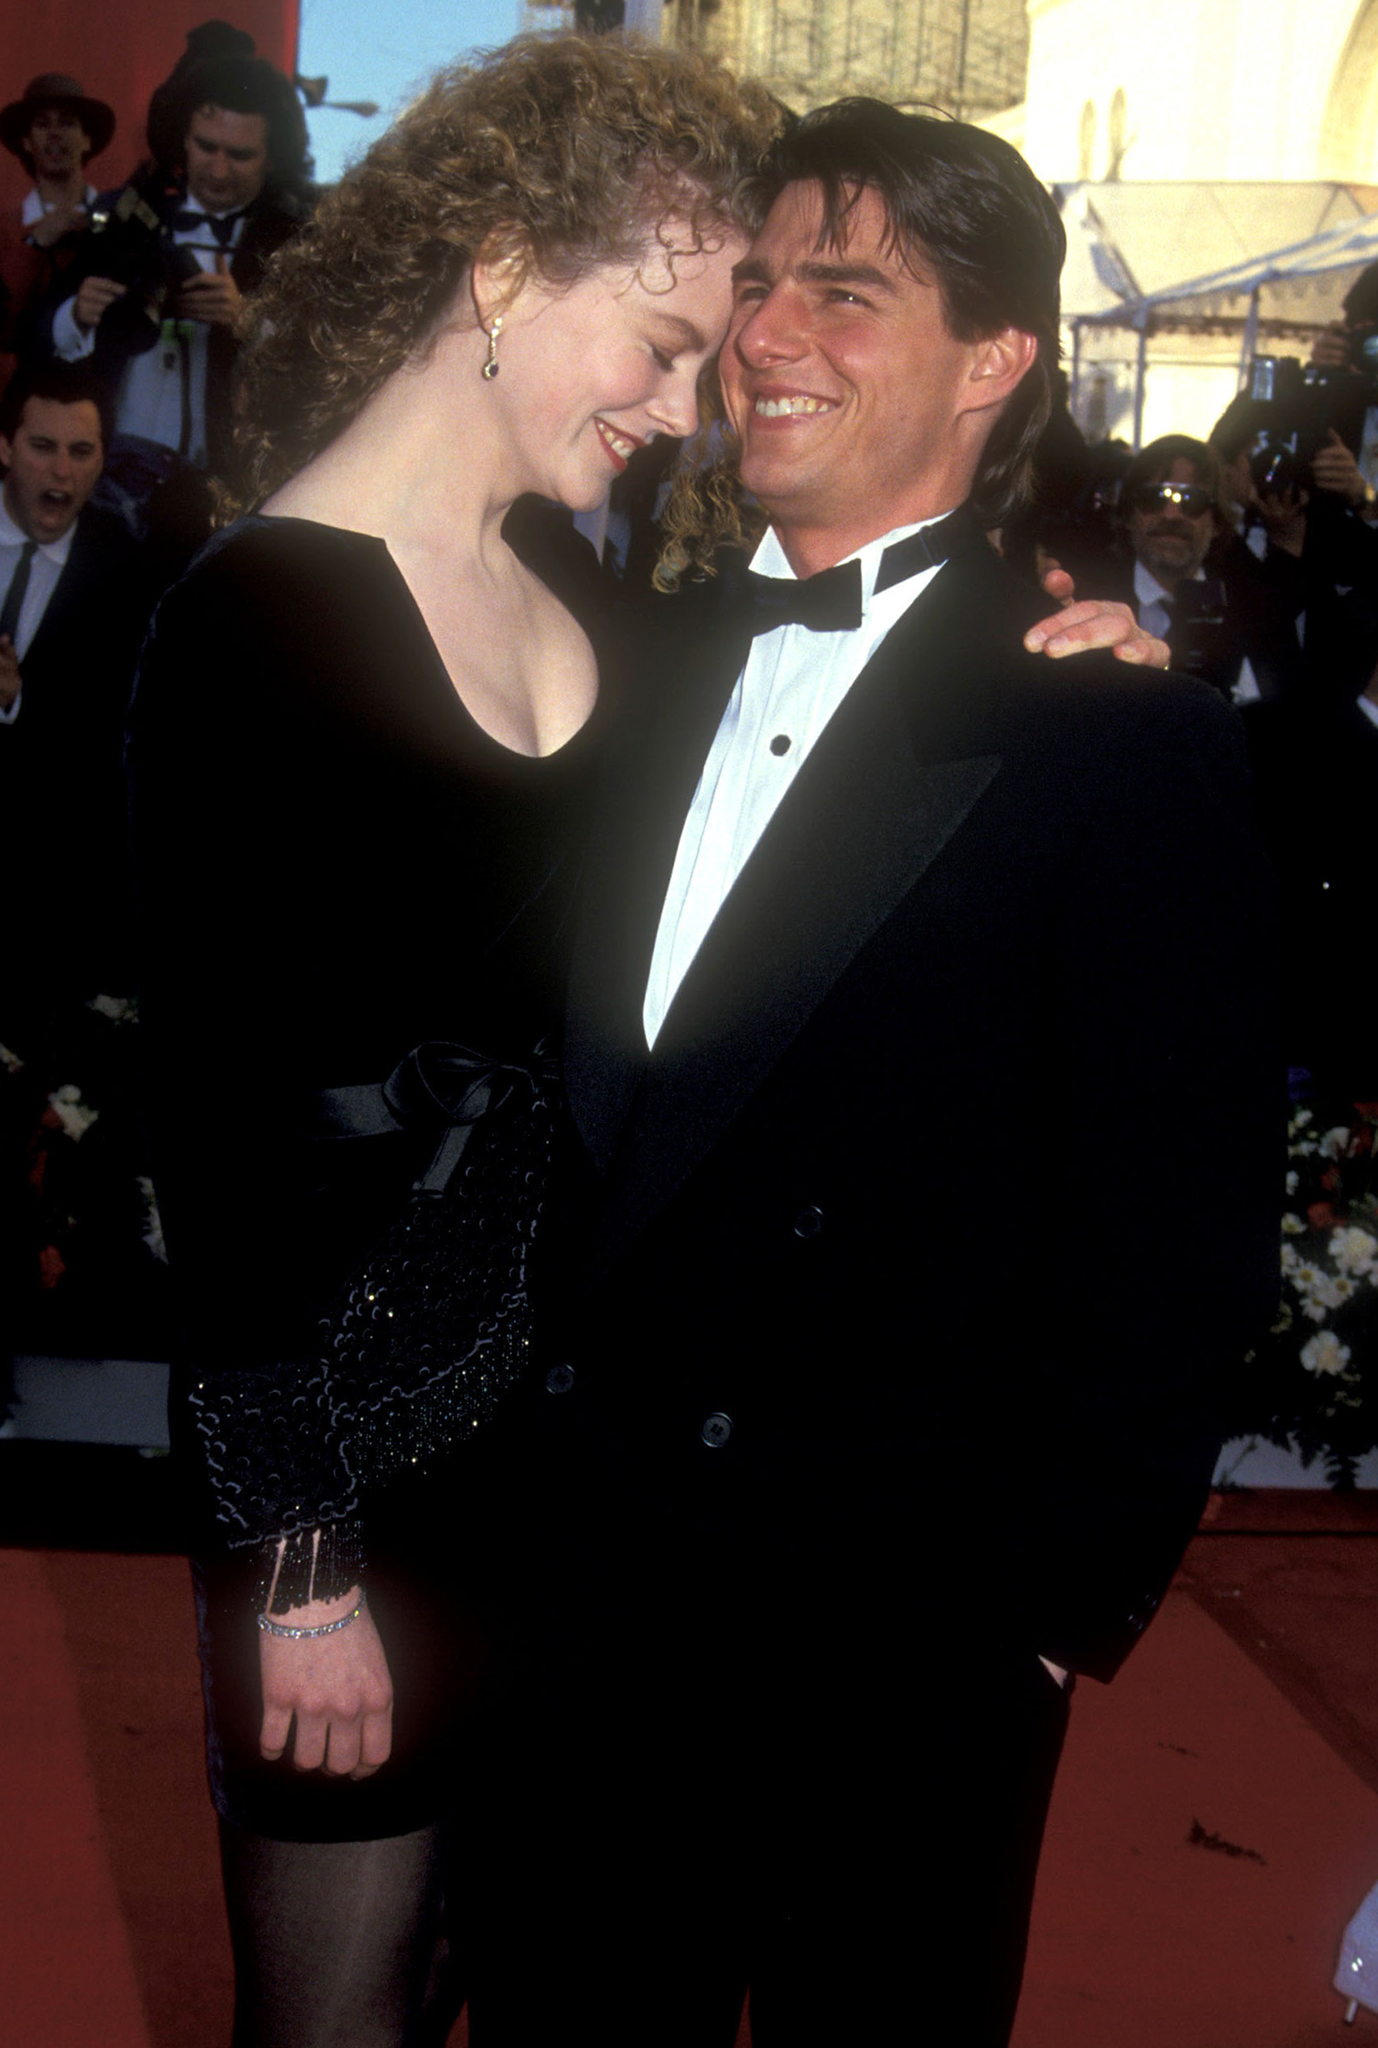 Kidman and Cruise in 1991 (Getty Images)